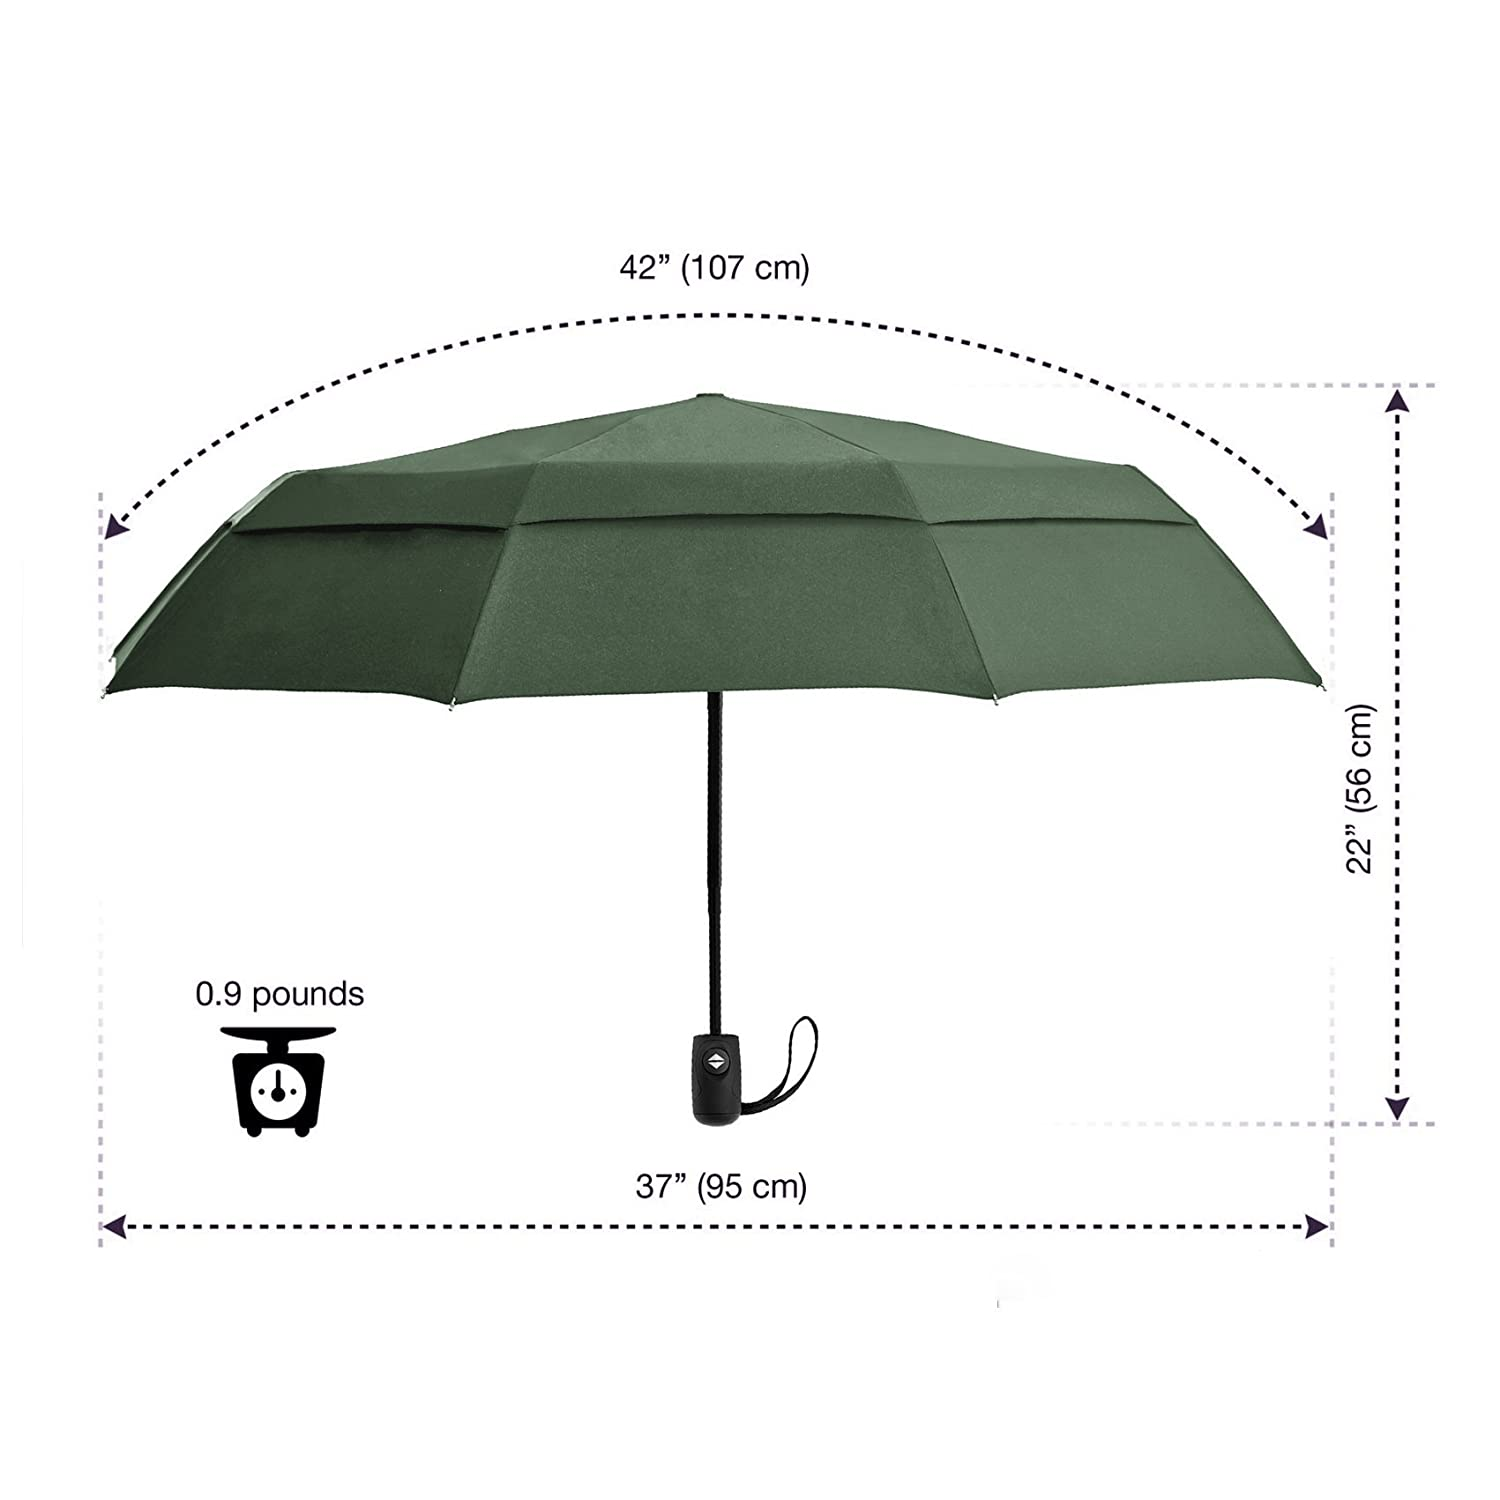 amazoncom smrt design the wind charmer umbrella windproof strong double canopy construction compact portable lightweight for easy travelling - Compact Canopy 2016